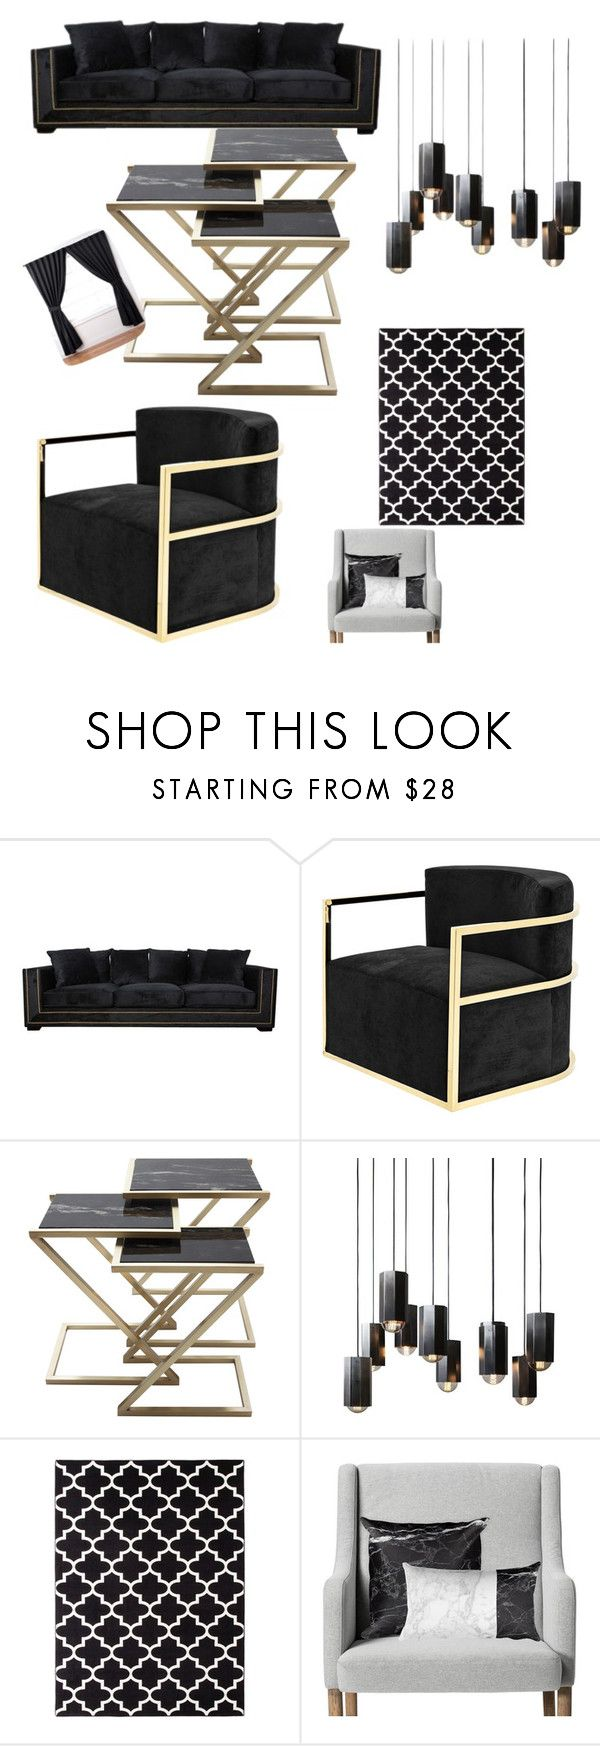 """""""Black Living room😍"""" by queenmimi123 ❤ liked on Polyvore featuring interior, interiors, interior design, home, home decor, interior decorating, Eichholtz, Threshold, ExceptionalSheets and living room"""